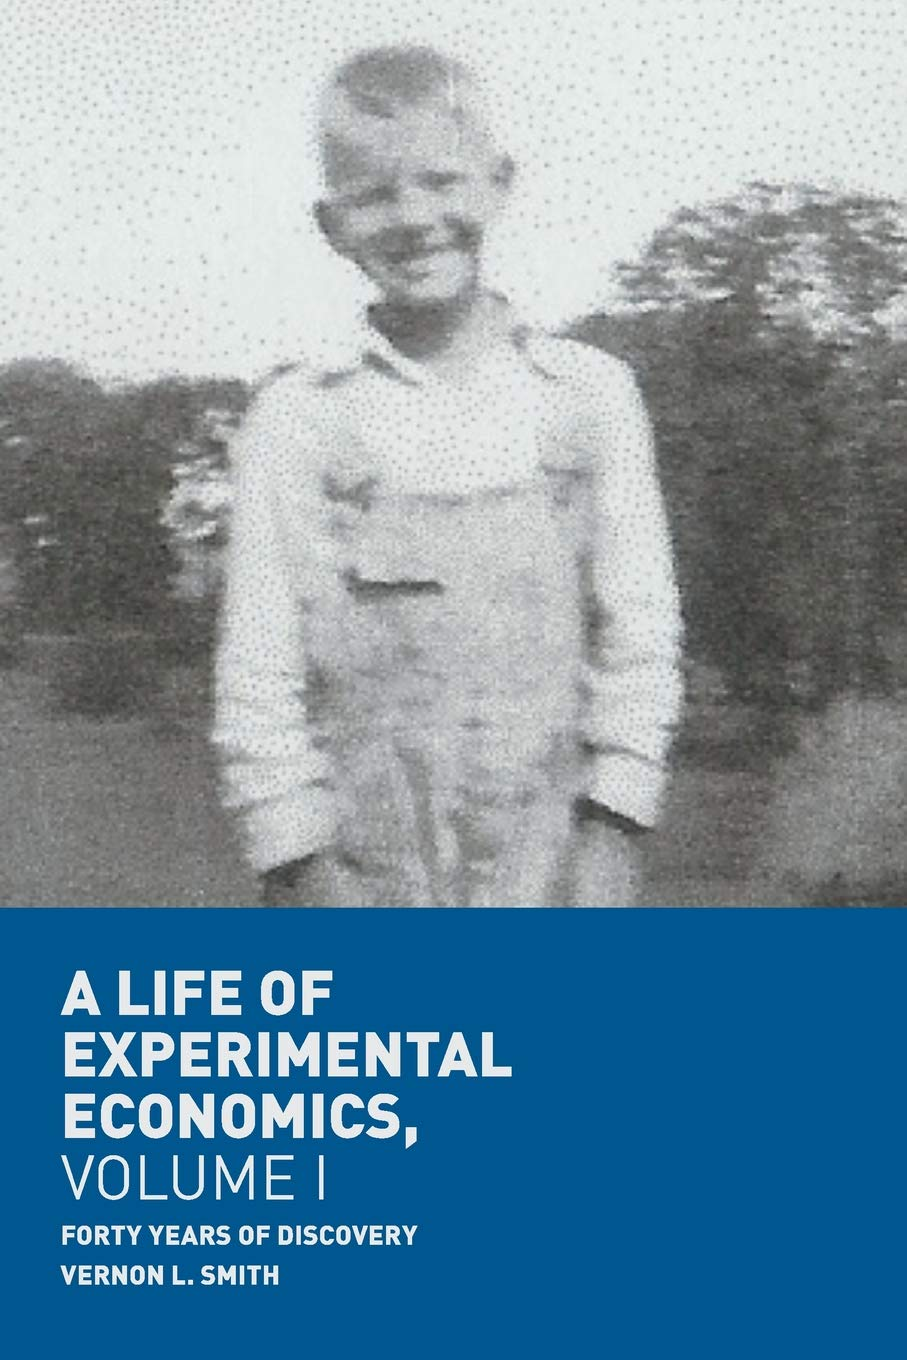 Image result for A Life of Experimental Economics, Volume i forty years